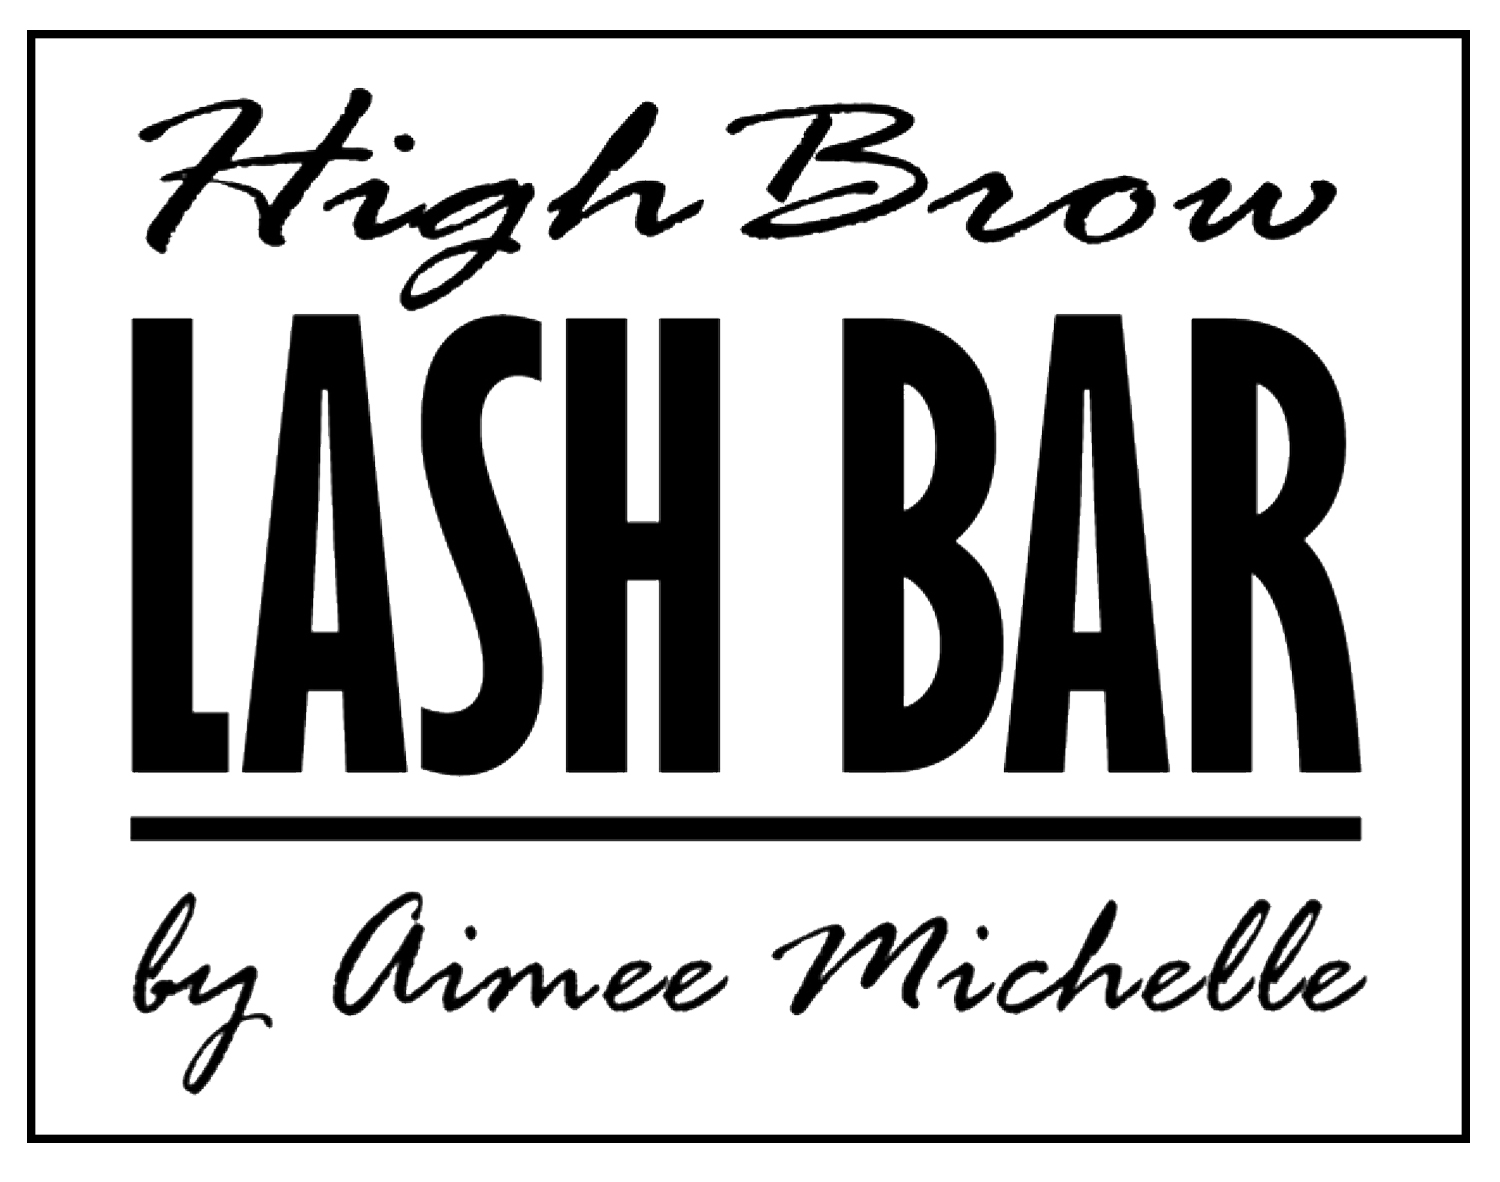 HighBrow Lash Bar by Aimee Michelle